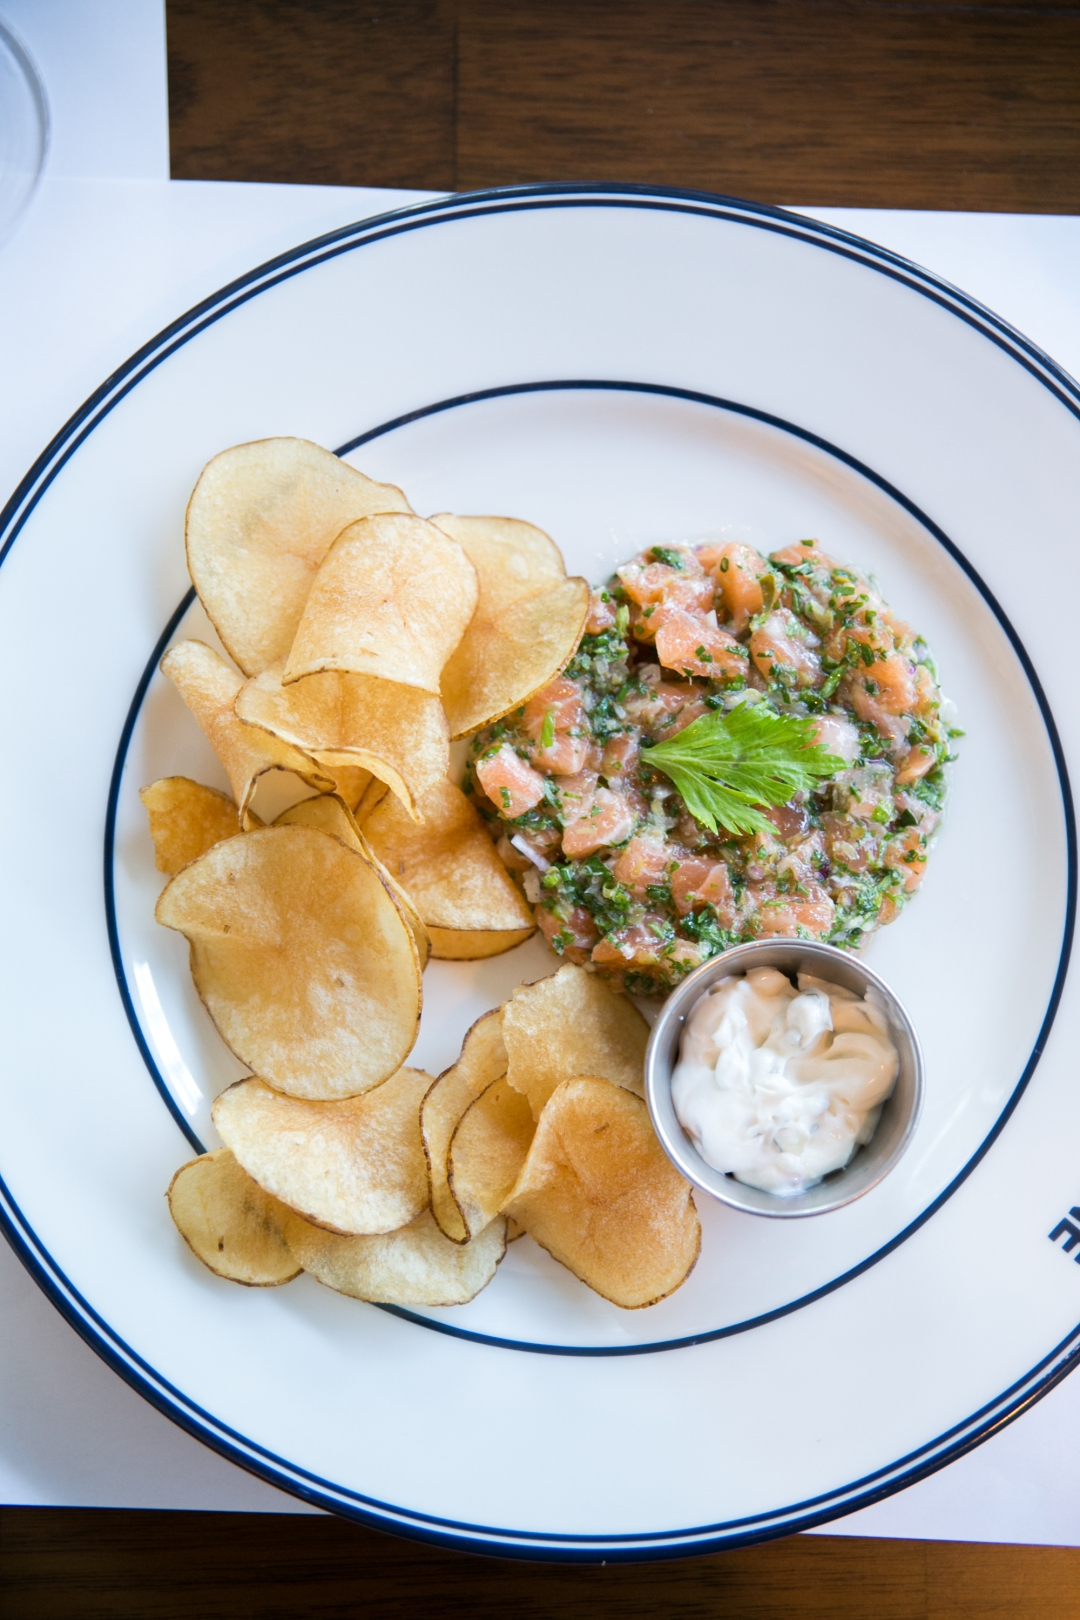 salmon-tartare-at-the-maine-oyster-bar-and-grill